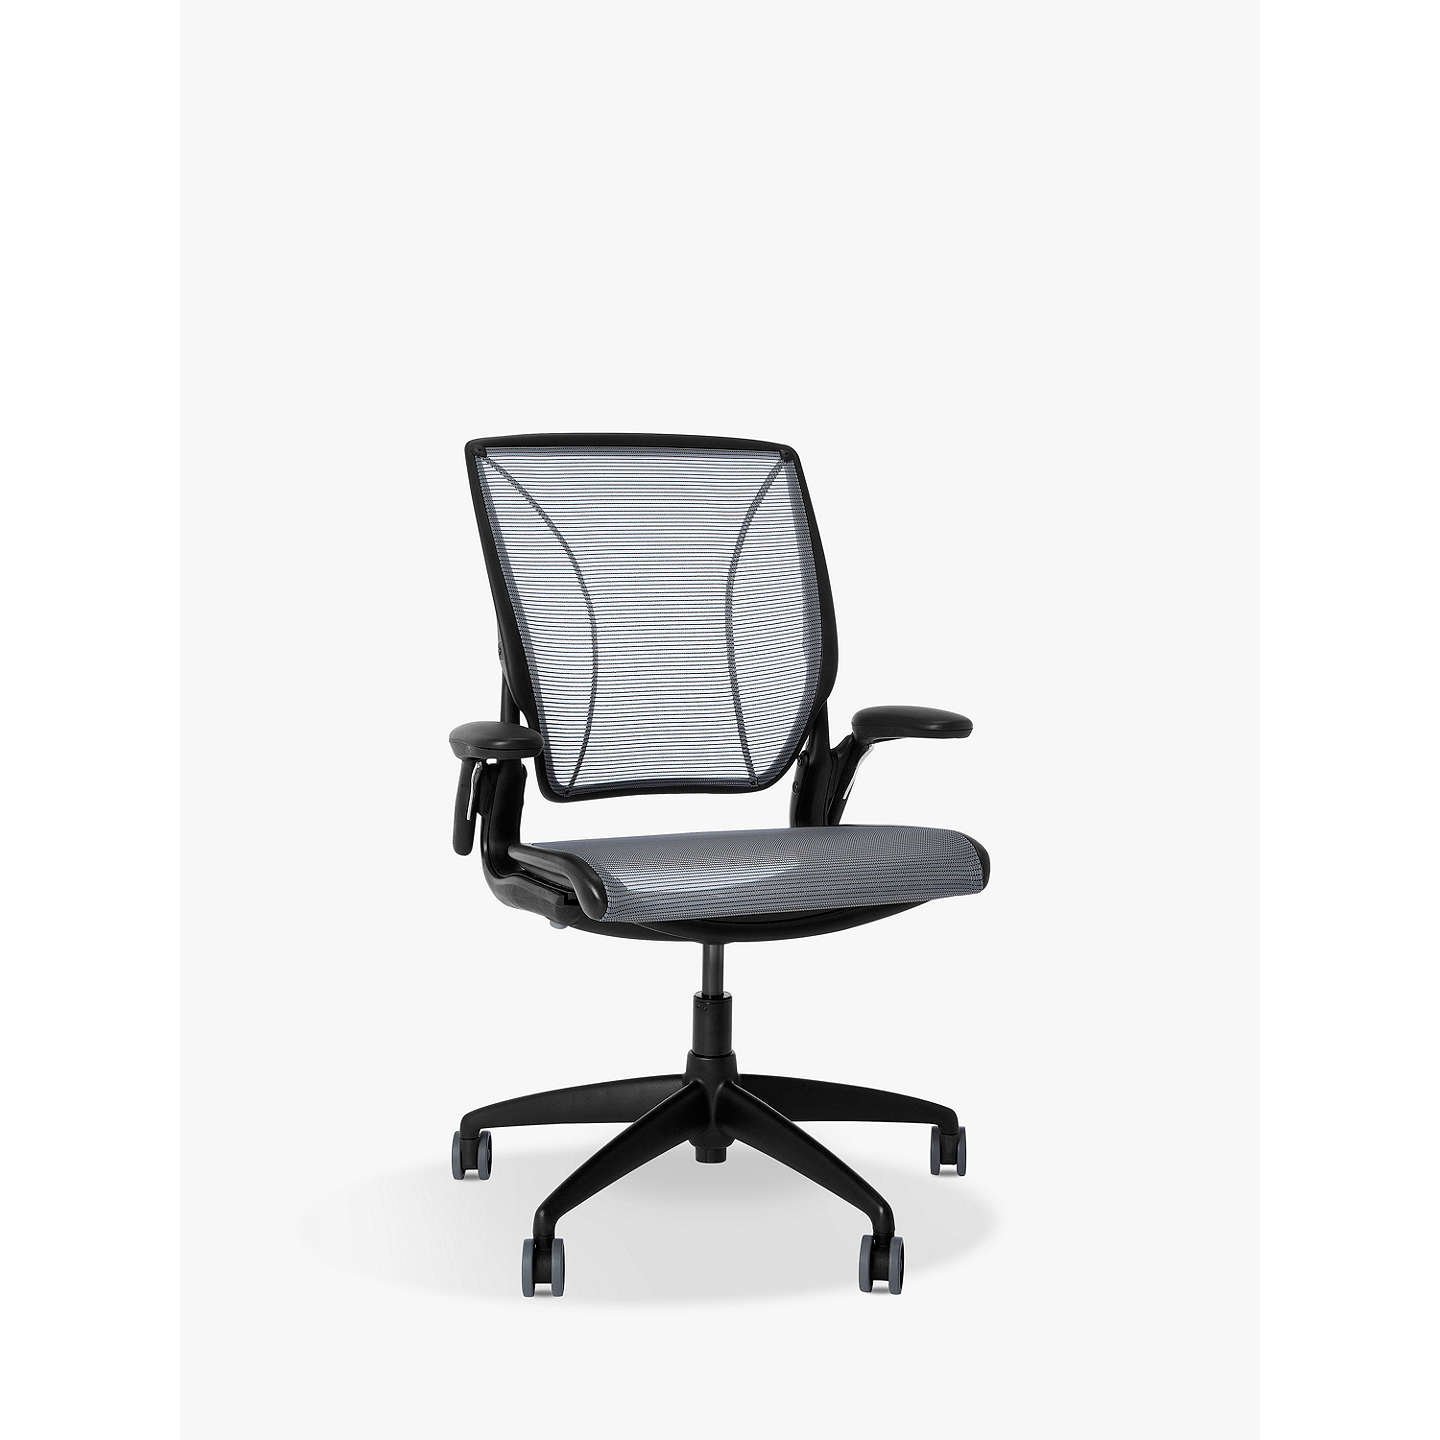 mesh shop uplift fit chair size world seat to with s than desk the adjustable more humanscale diffrient is